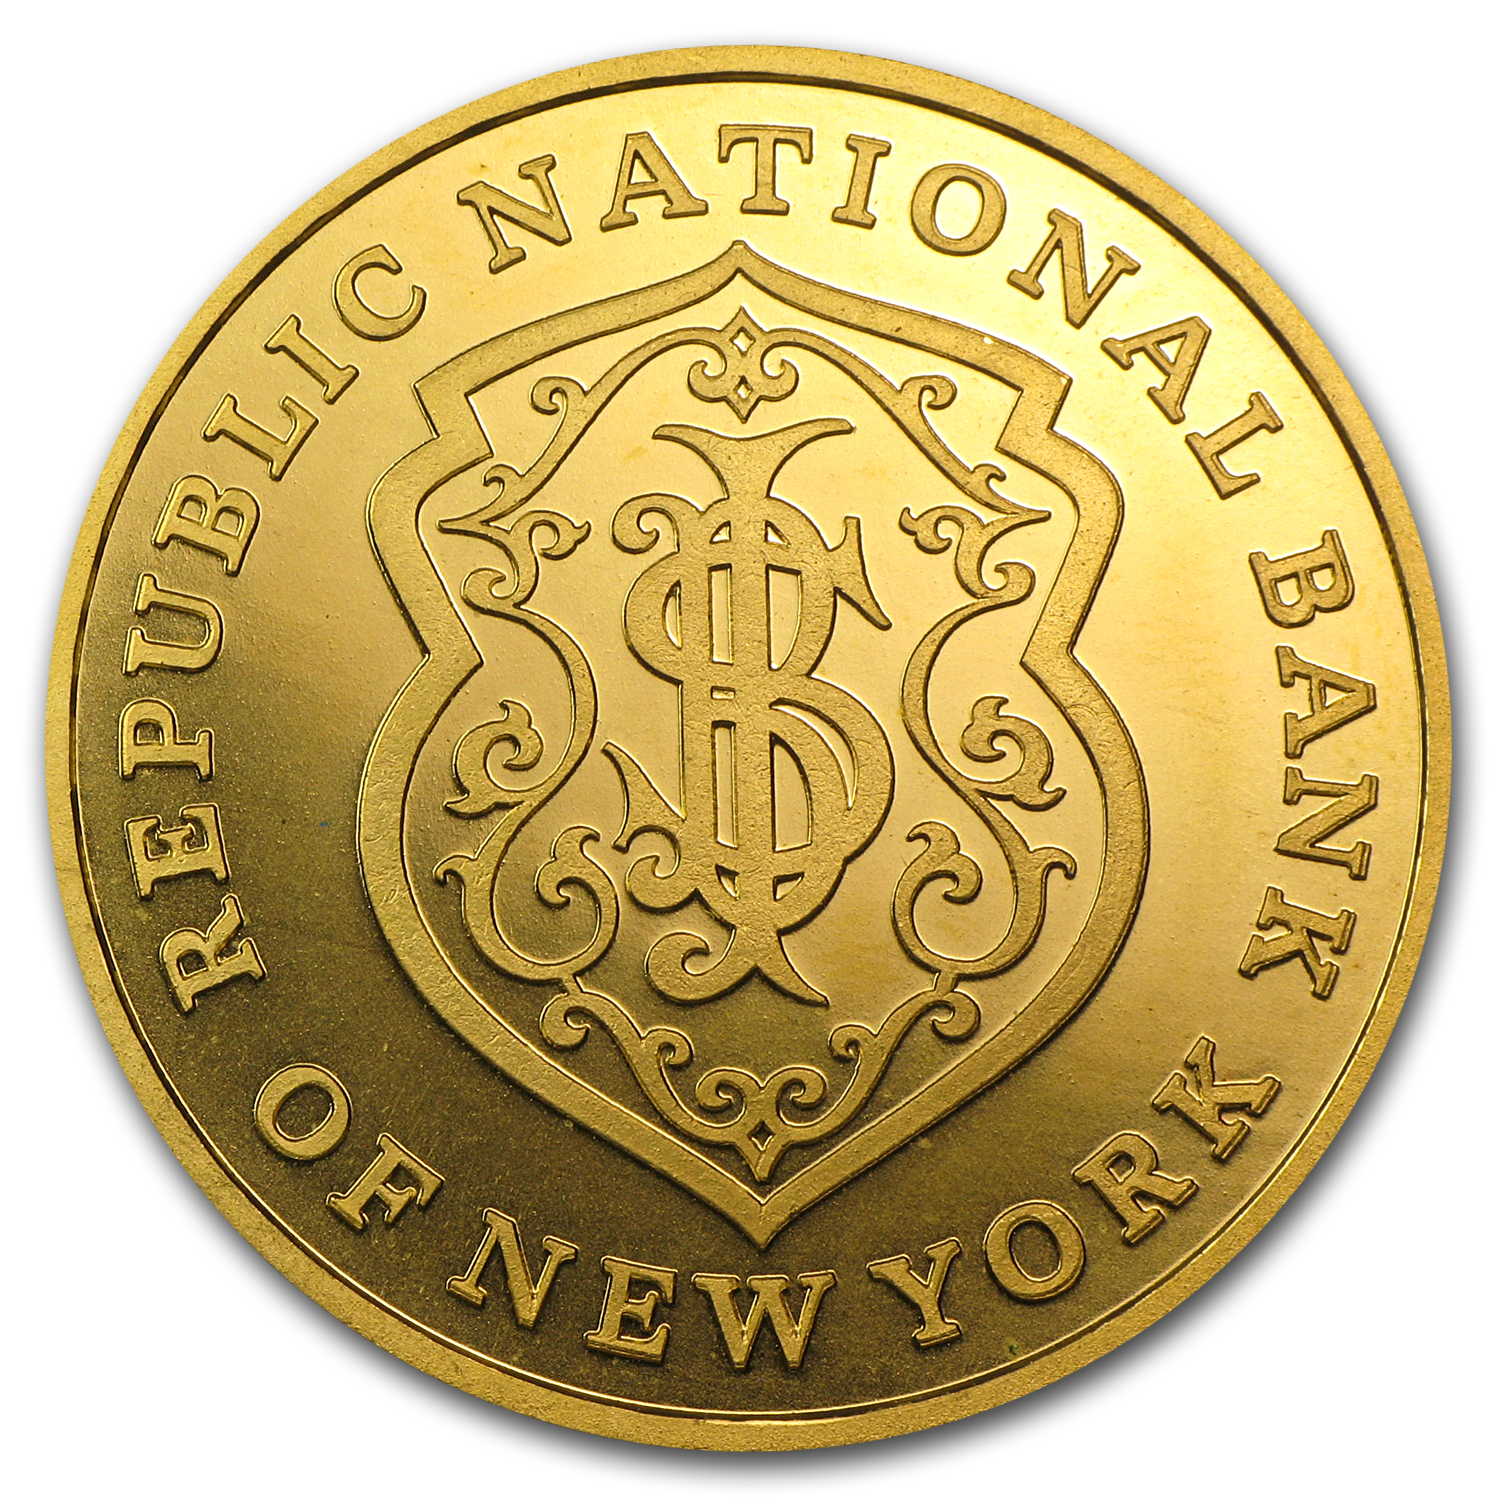 1 oz Gold Rounds - Republic National Bank of New York